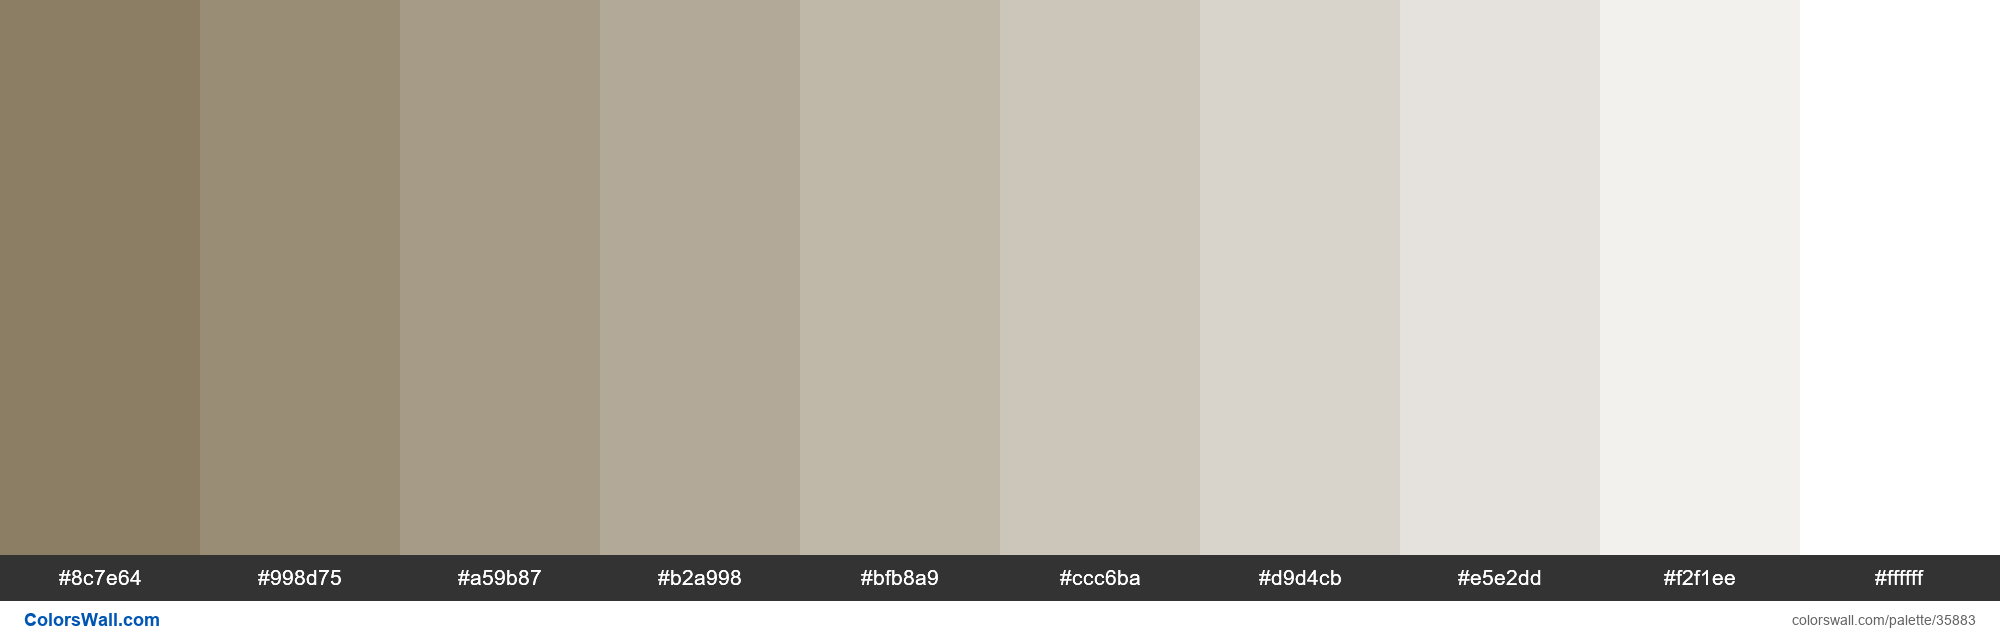 Tints XKCD Color grey brown #7f7053 hex - #35883